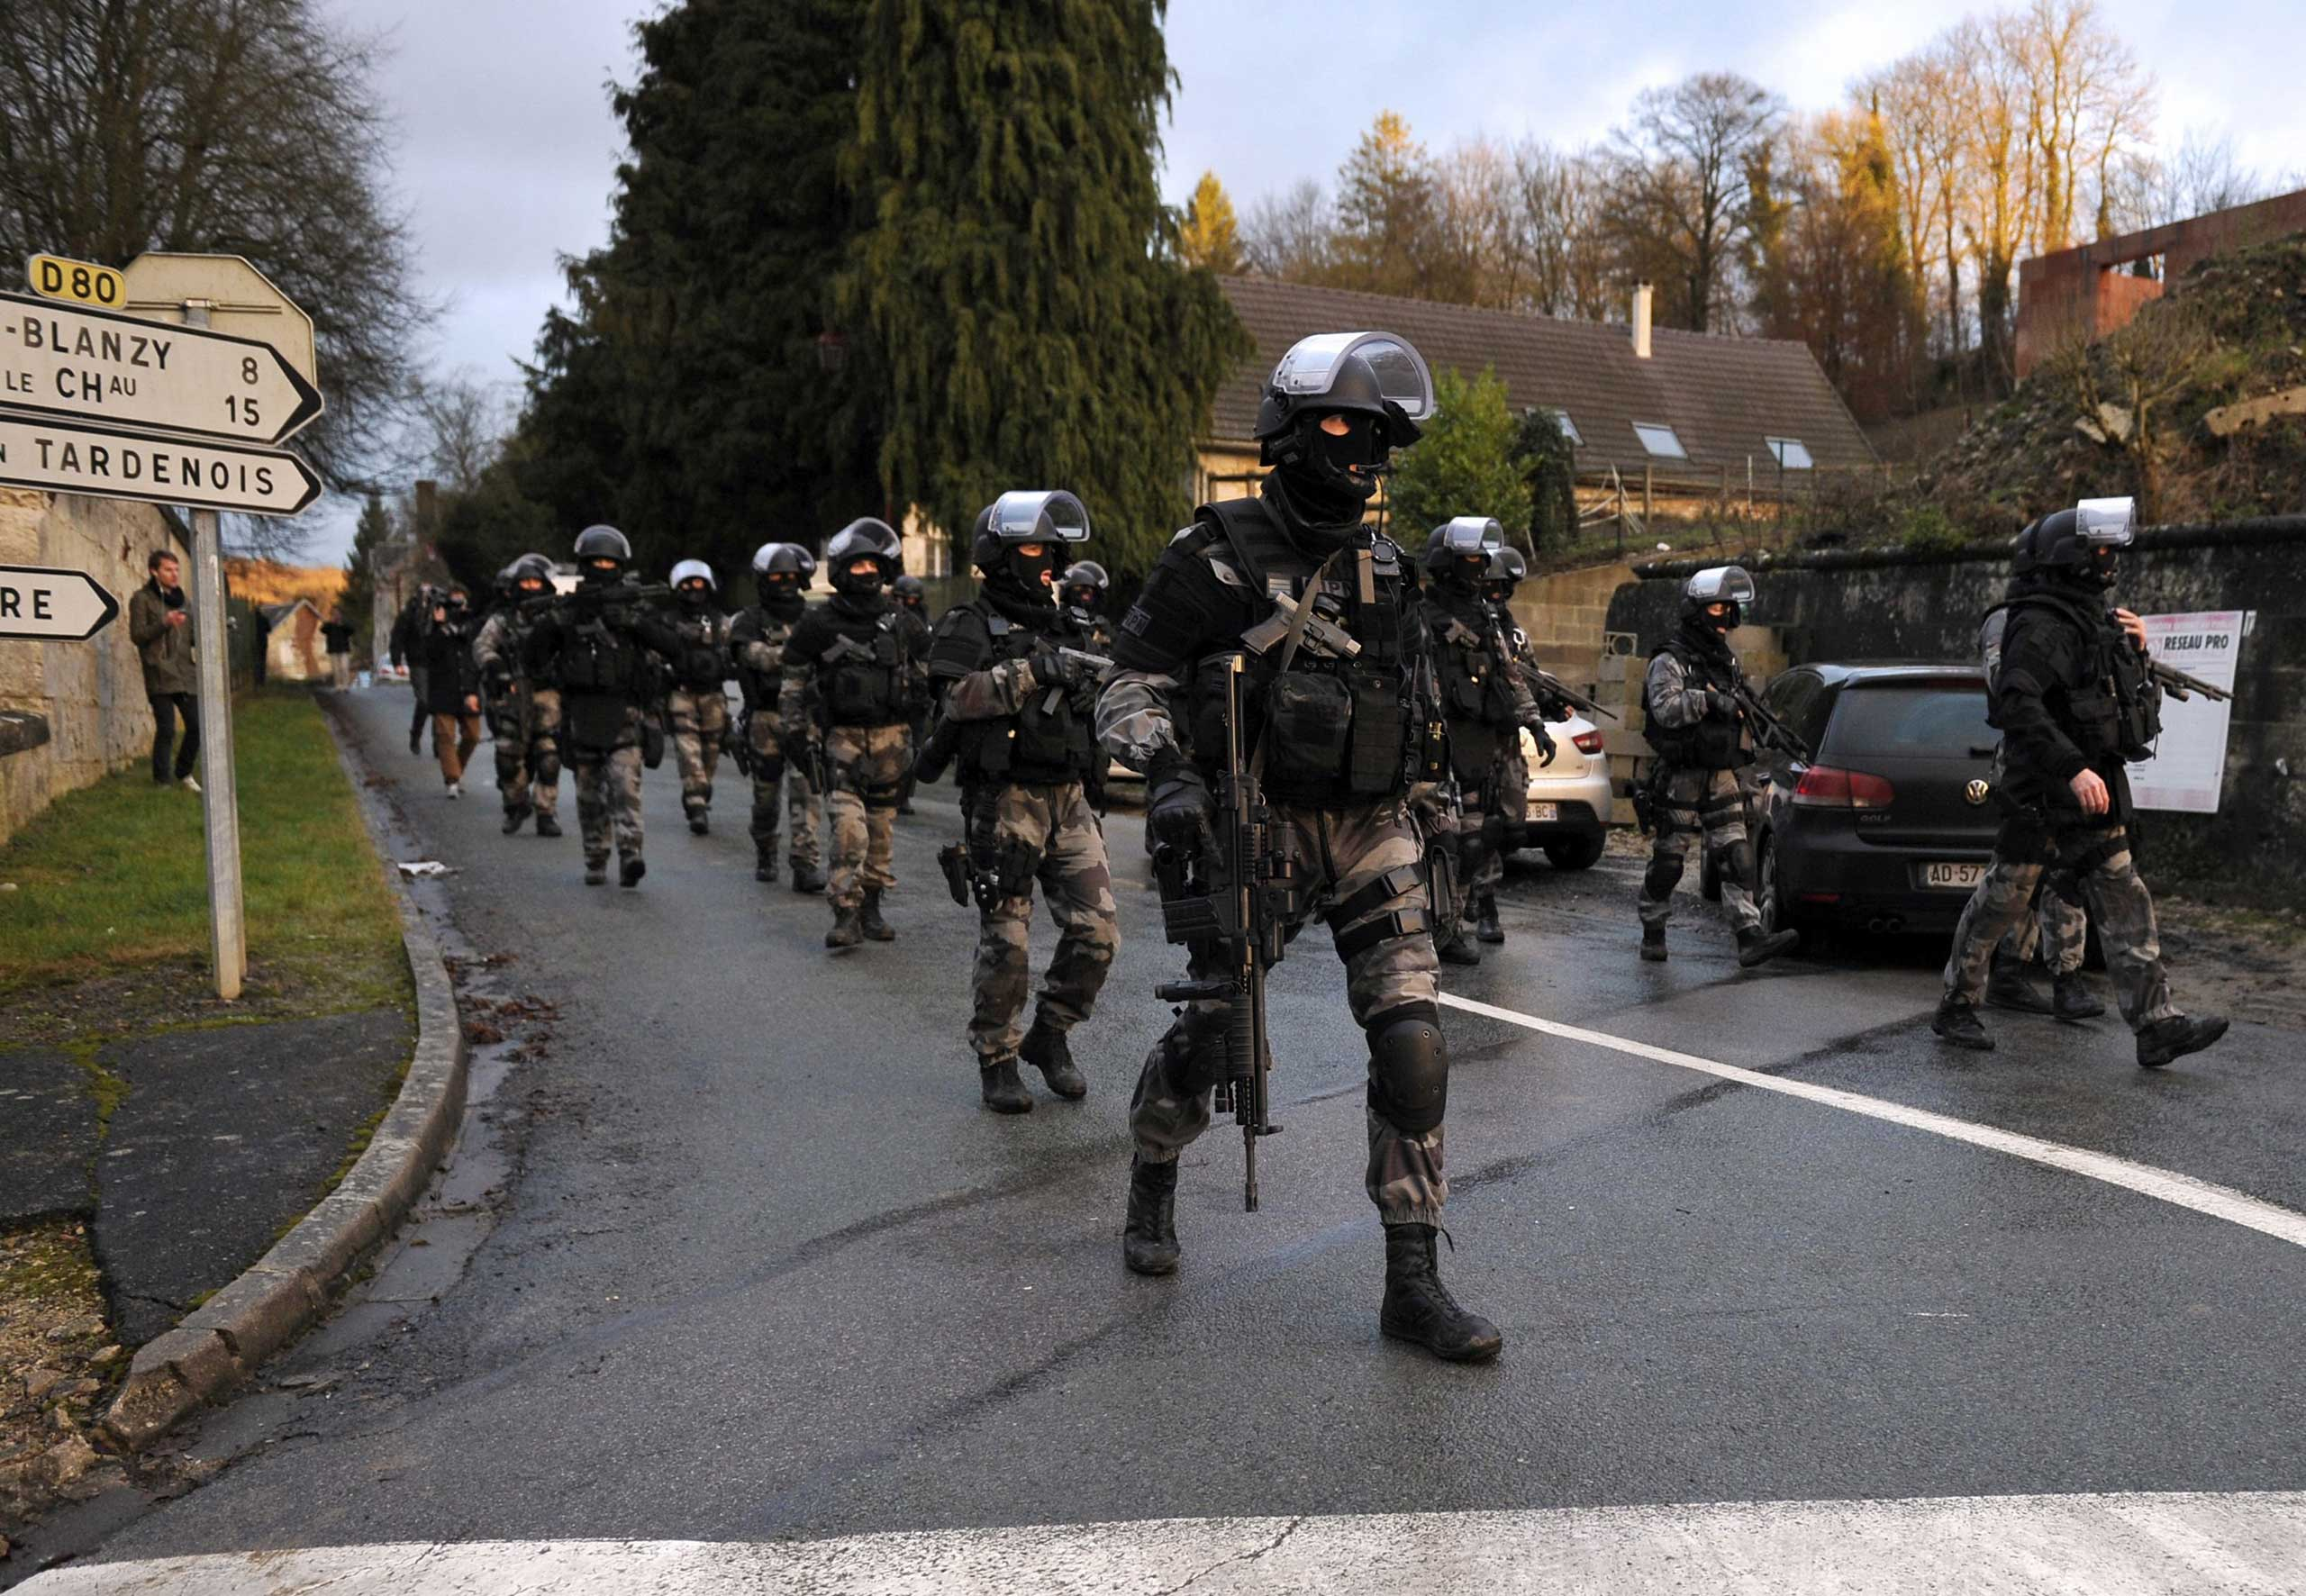 TOPSHOTS                        Members of the GIPN and RAID, French police special forces, walk in Corcy, northern France, on January 8, 2015 as they carry out searches as part of an investigation into a deadly attack the day before by armed gunmen on the Paris offices of French satirical weekly Charlie Hebdo. A huge manhunt for two brothers suspected of massacring 12 people in an Islamist attack at a satirical French weekly zeroed in on a northern town on January 8 after the discovery of one of the getaway cars. As thousands of police tightened their net, the country marked a rare national day of mourning for January 7's bloodbath at Charlie Hebdo magazine in Paris, the worst terrorist attack in France for half a century.   AFP PHOTO / FRANCOIS LO PRESTIFRANCOIS LO PRESTI/AFP/Getty Images